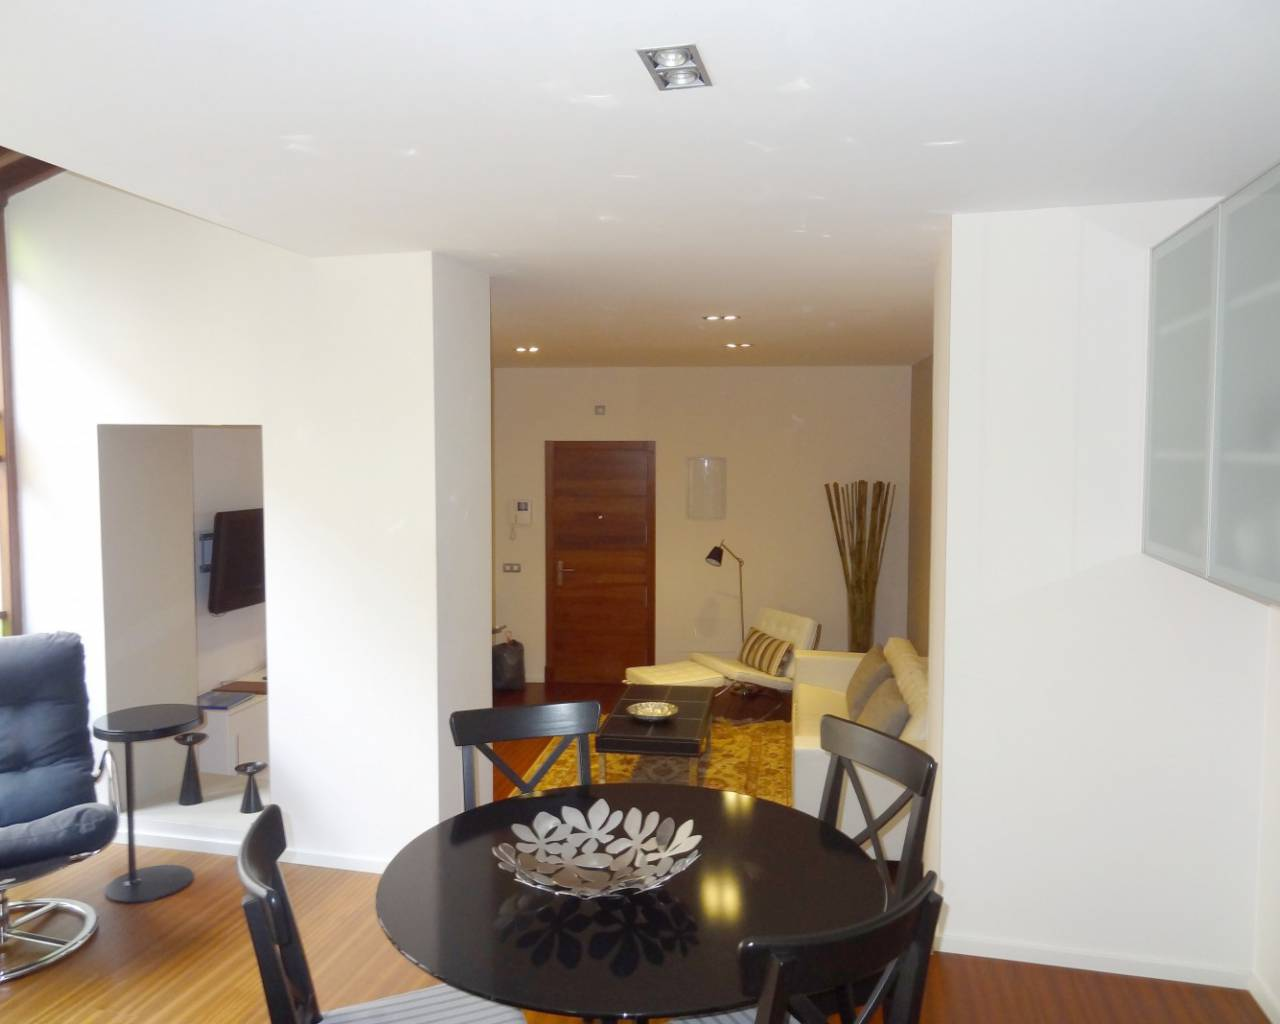 Apartment - For sale - Palma de Mallorca - Palma De Mallorca